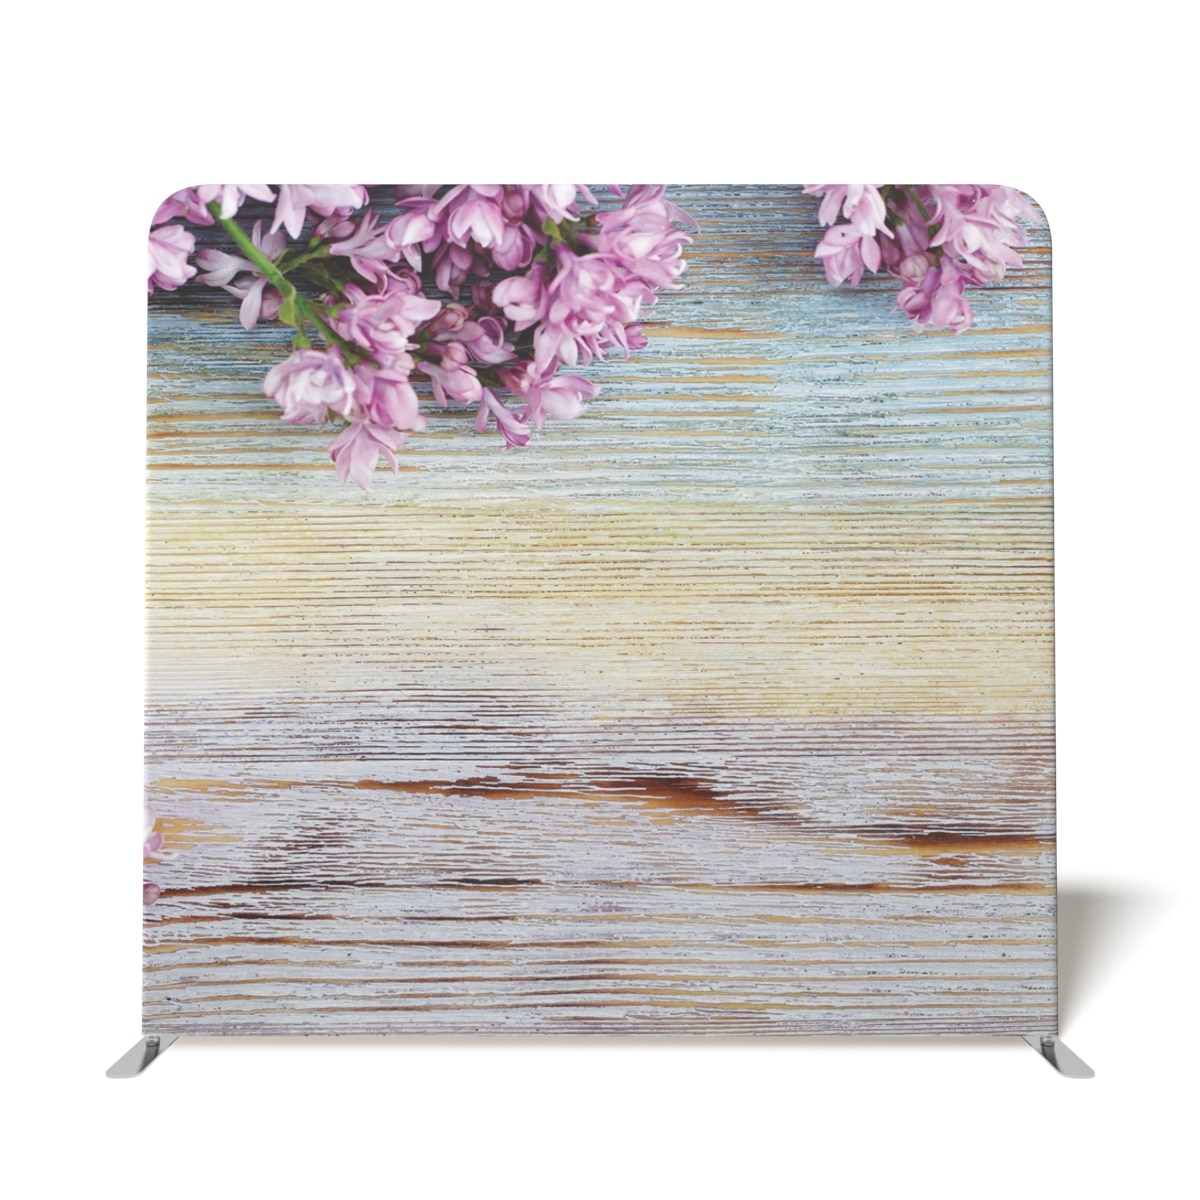 Wooden With Pink Flowers 2